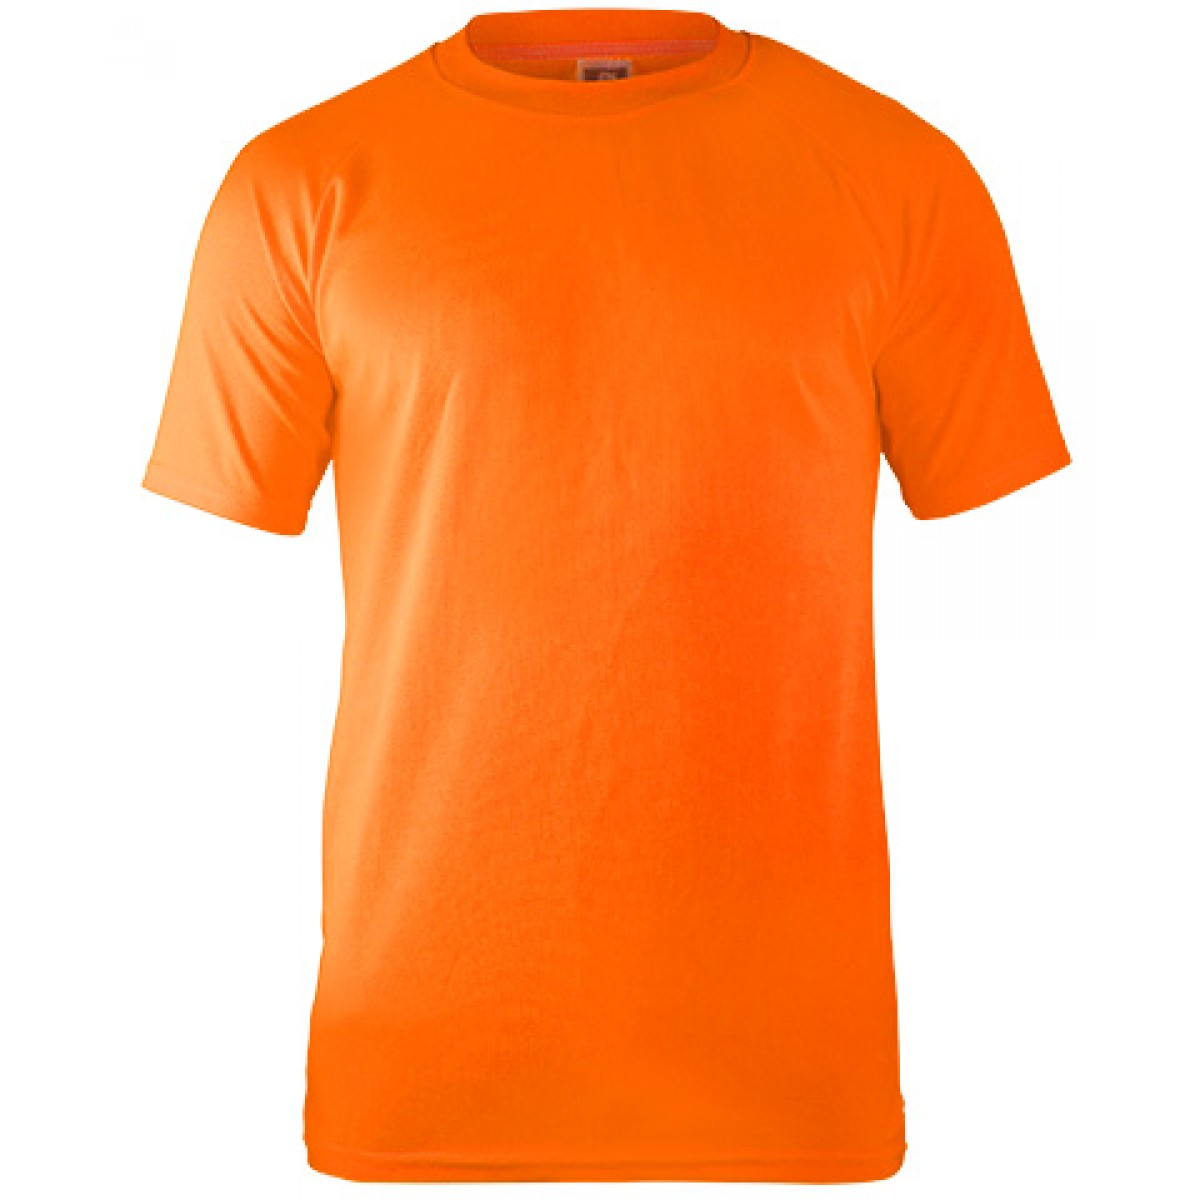 Performance T-shirt-Safety Orange-YL